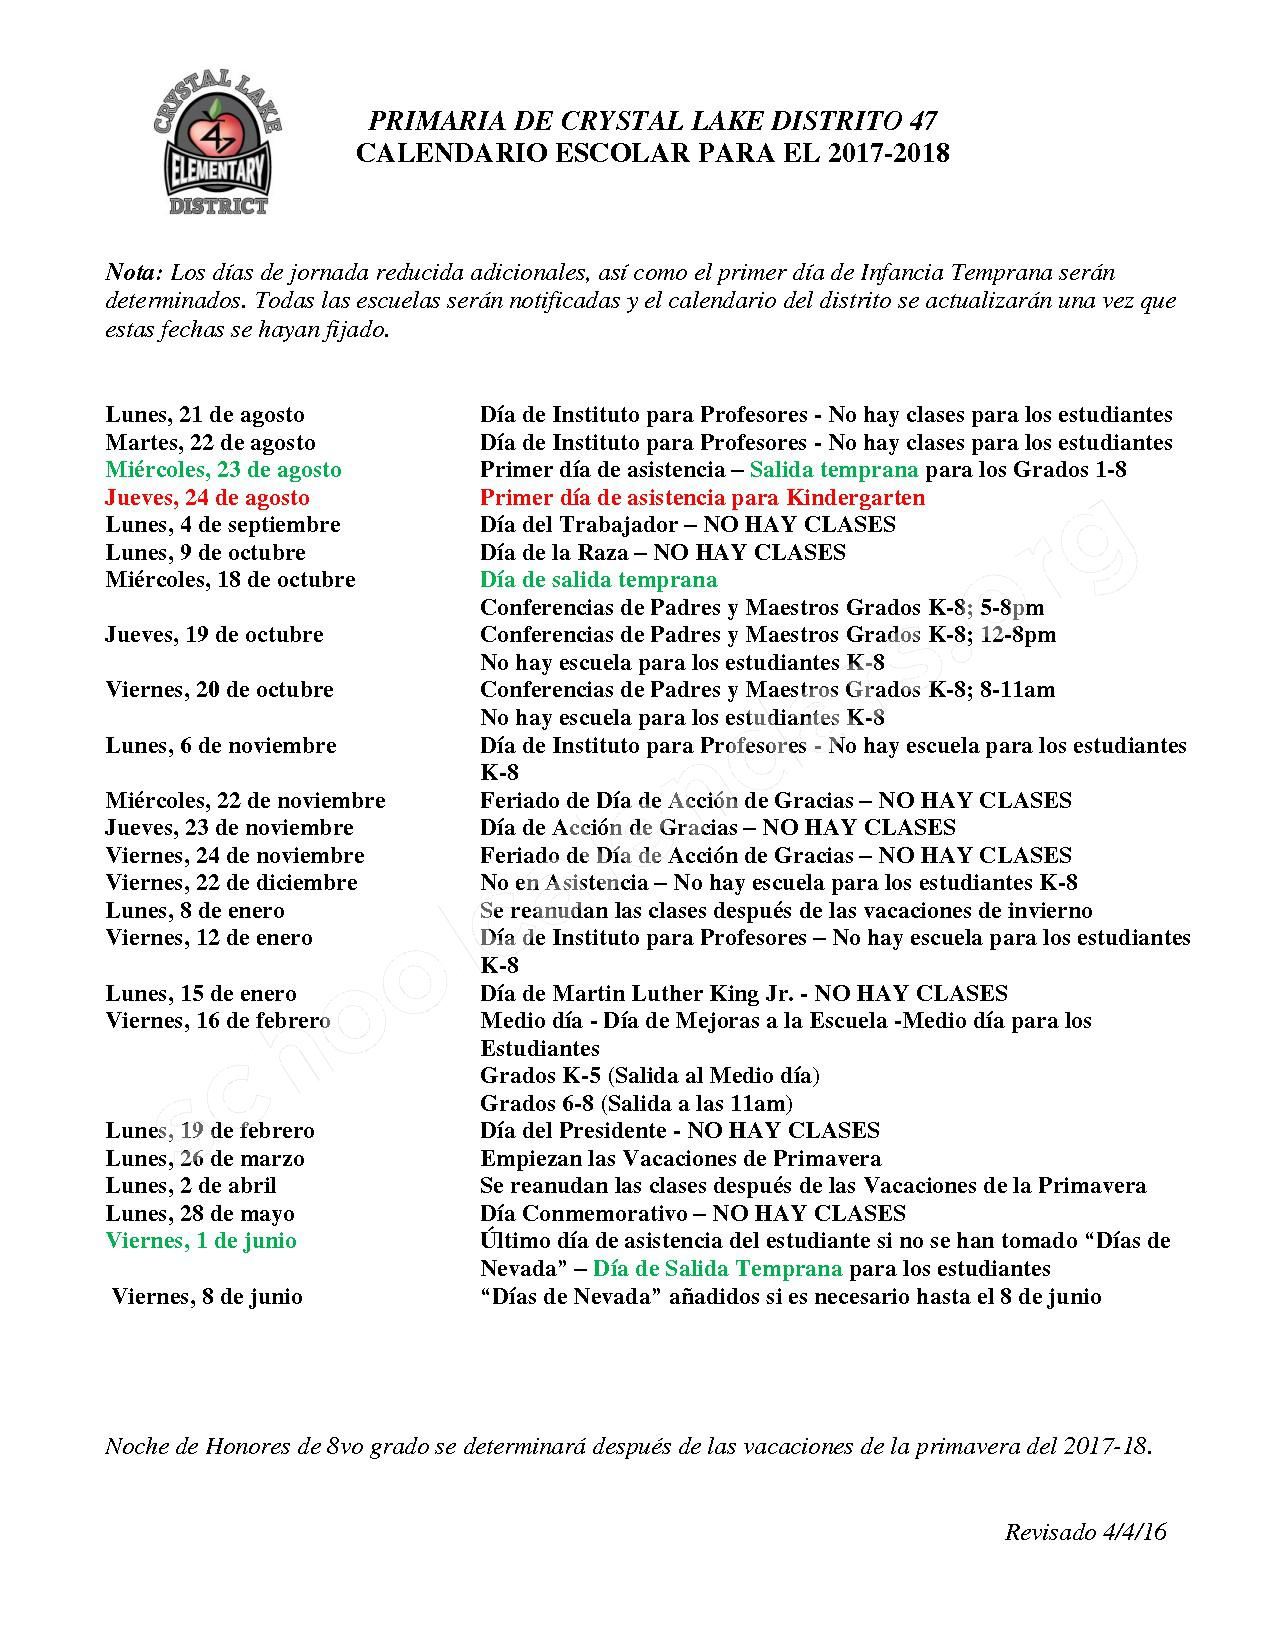 2017 - 2018 District Calendar Espanol – Crystal Lake Community Consolidated School District 47 – page 1